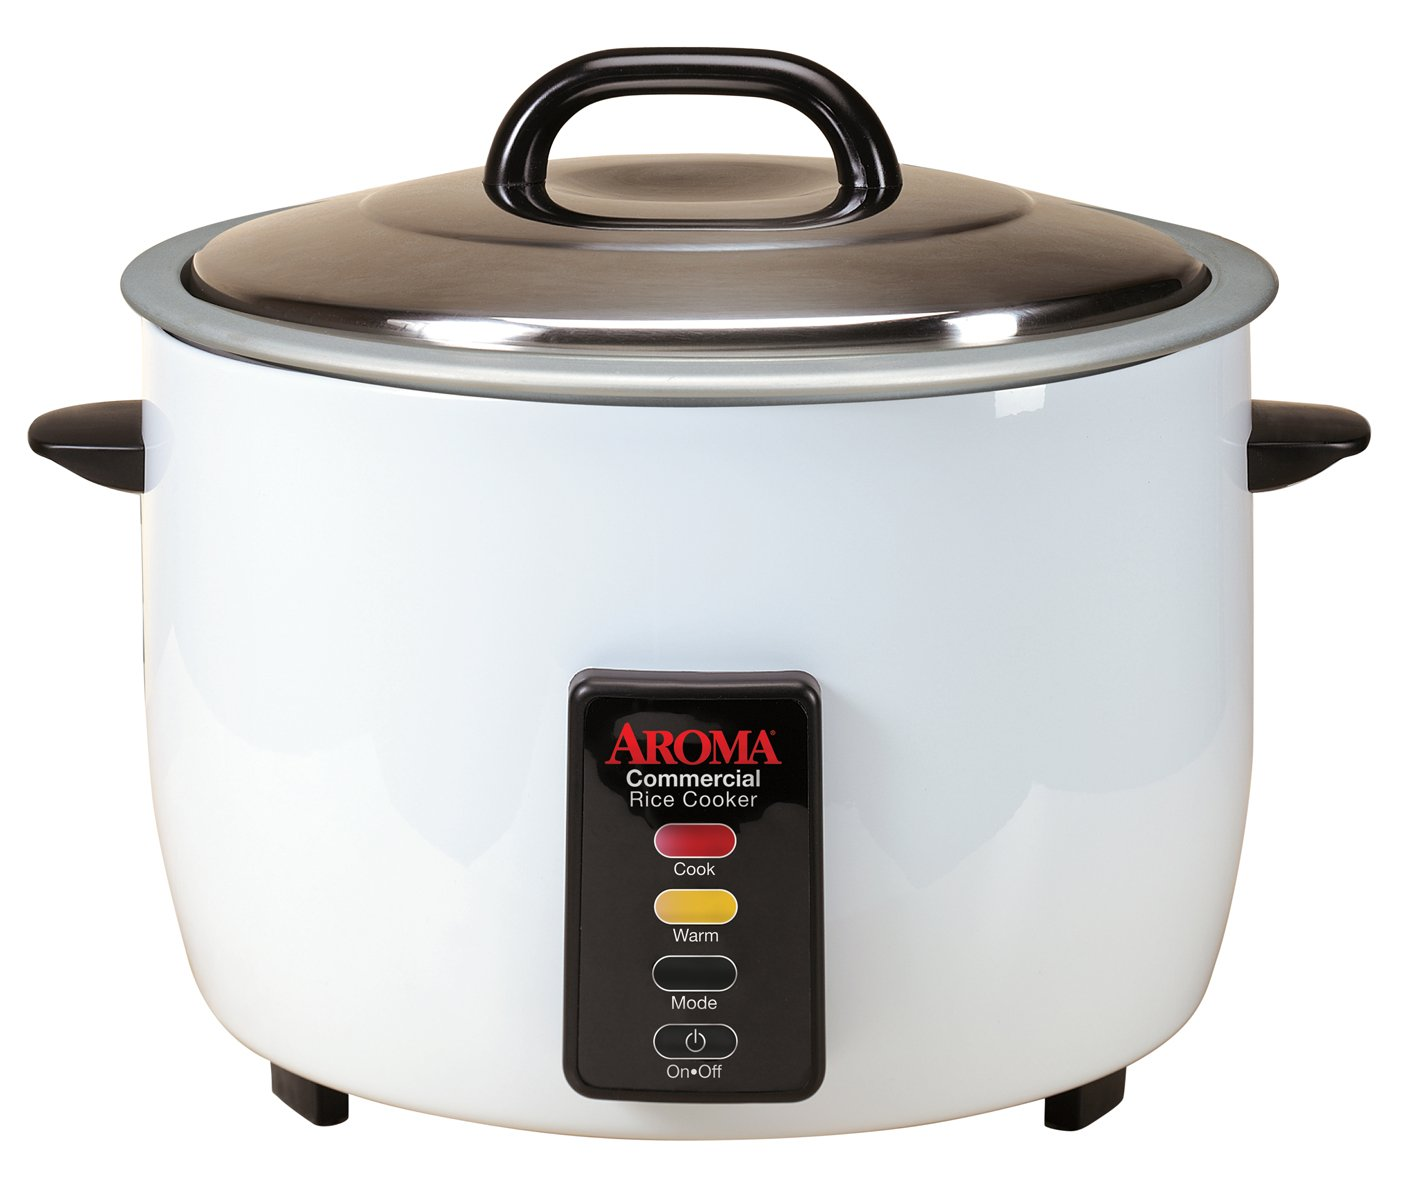 amazon com aroma housewares 60 cup (cooked) (30 cup uncookedamazon com aroma housewares 60 cup (cooked) (30 cup uncooked) commercial rice cooker (arc 1033e) kitchen \u0026 dining